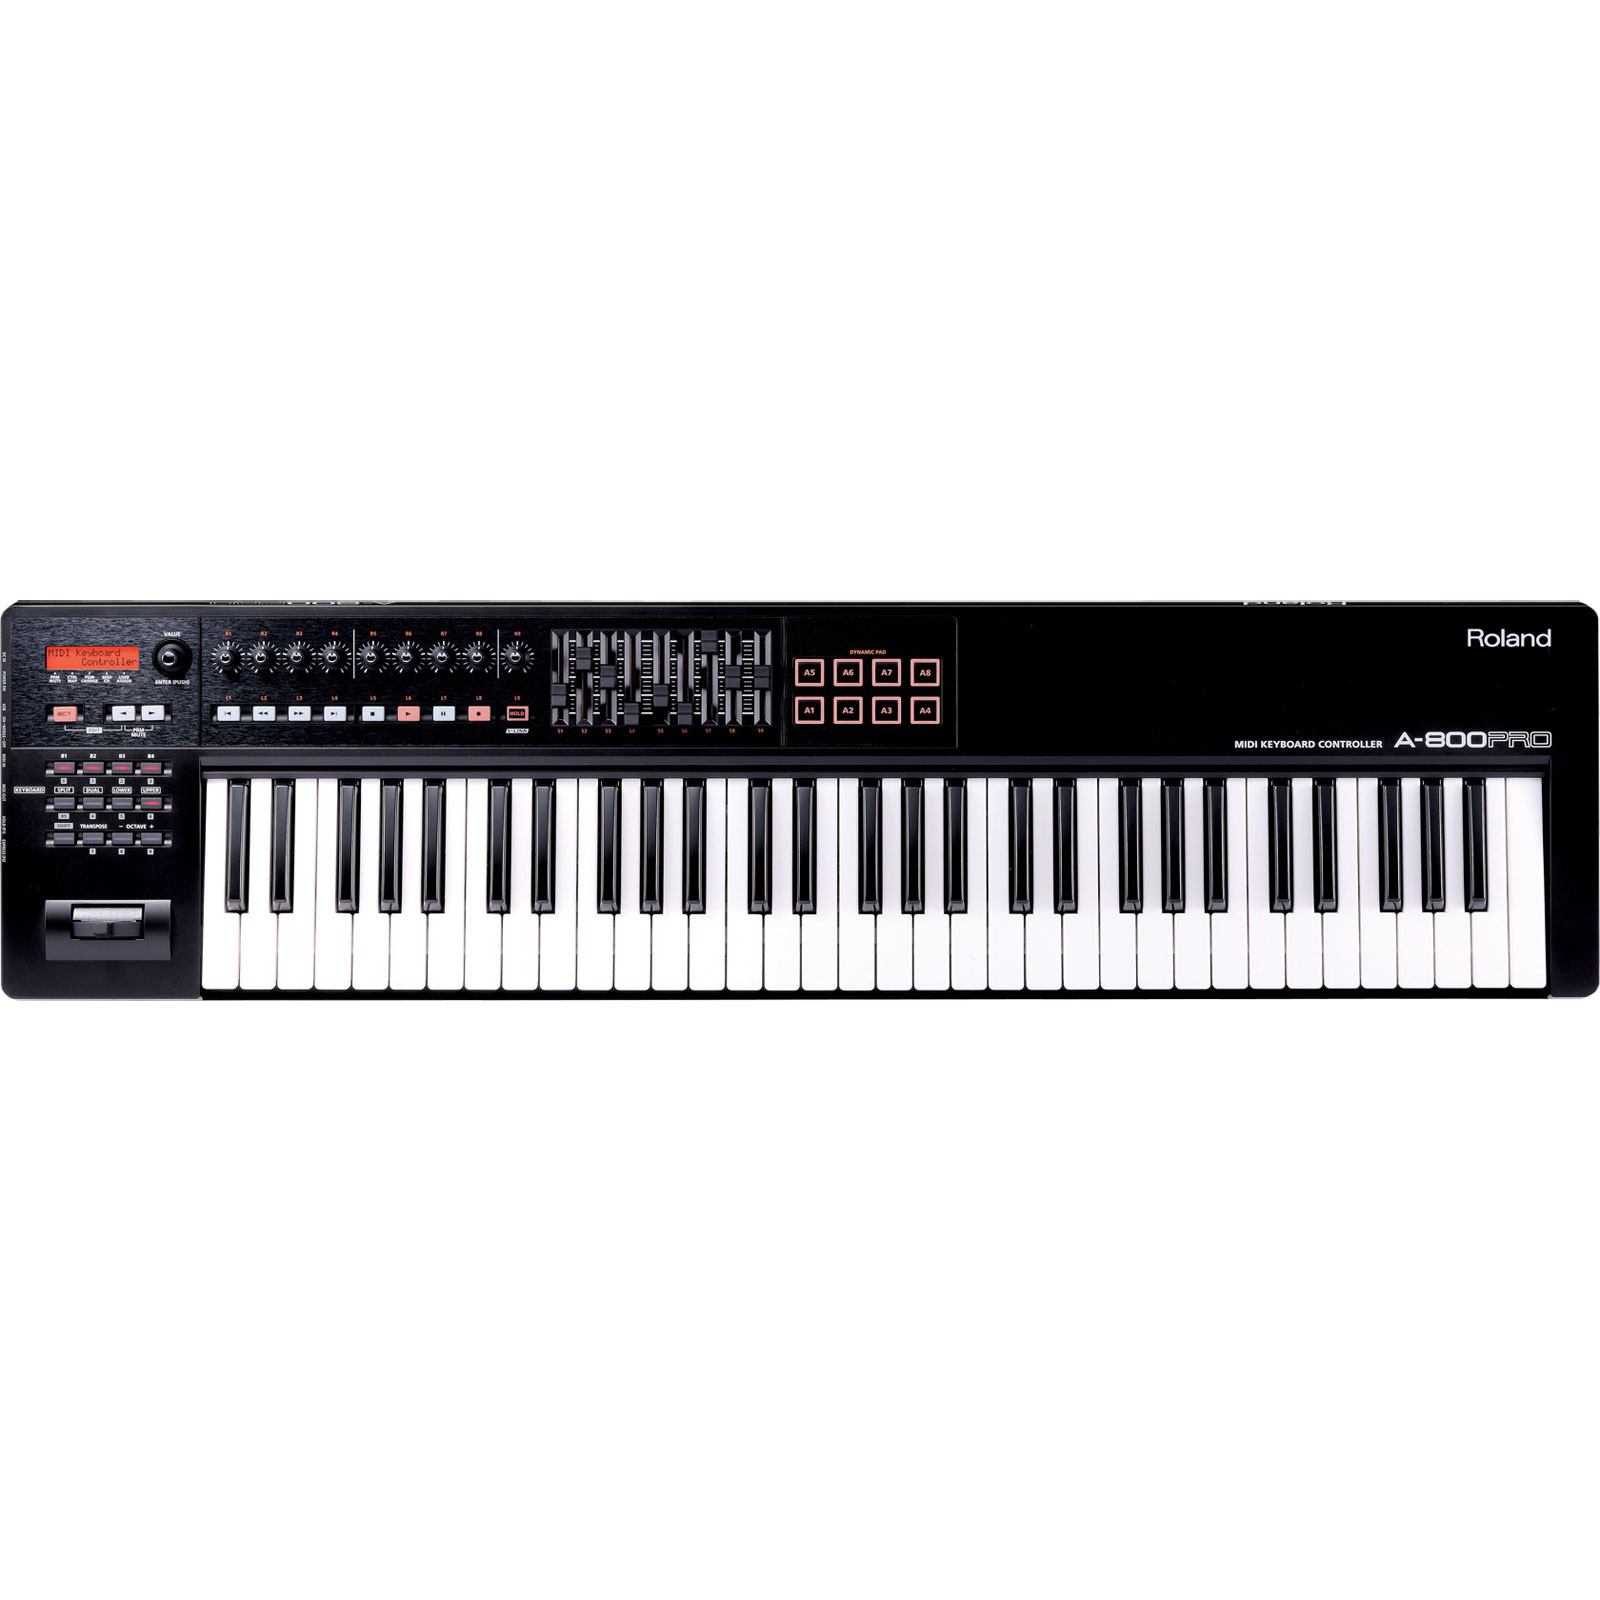 Roland A Pro Series 61-Key Pro MIDI Keyboard Controller